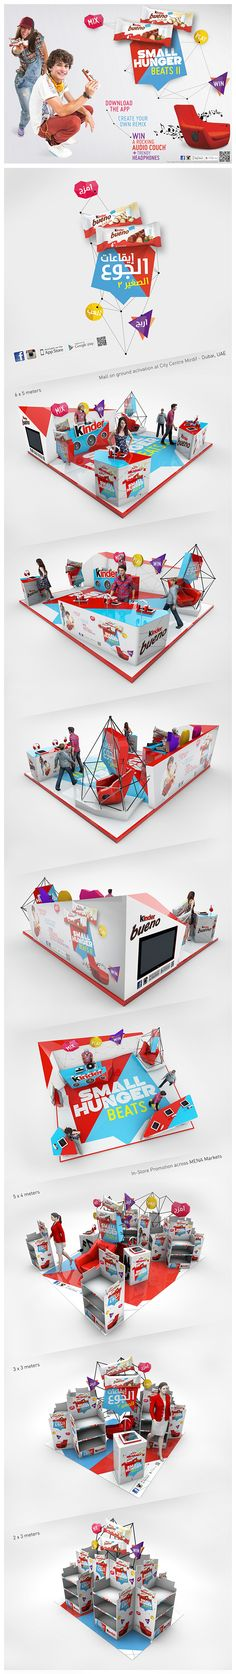 Kinder Bueno Small Hunger Beats 2 Activation on Behance